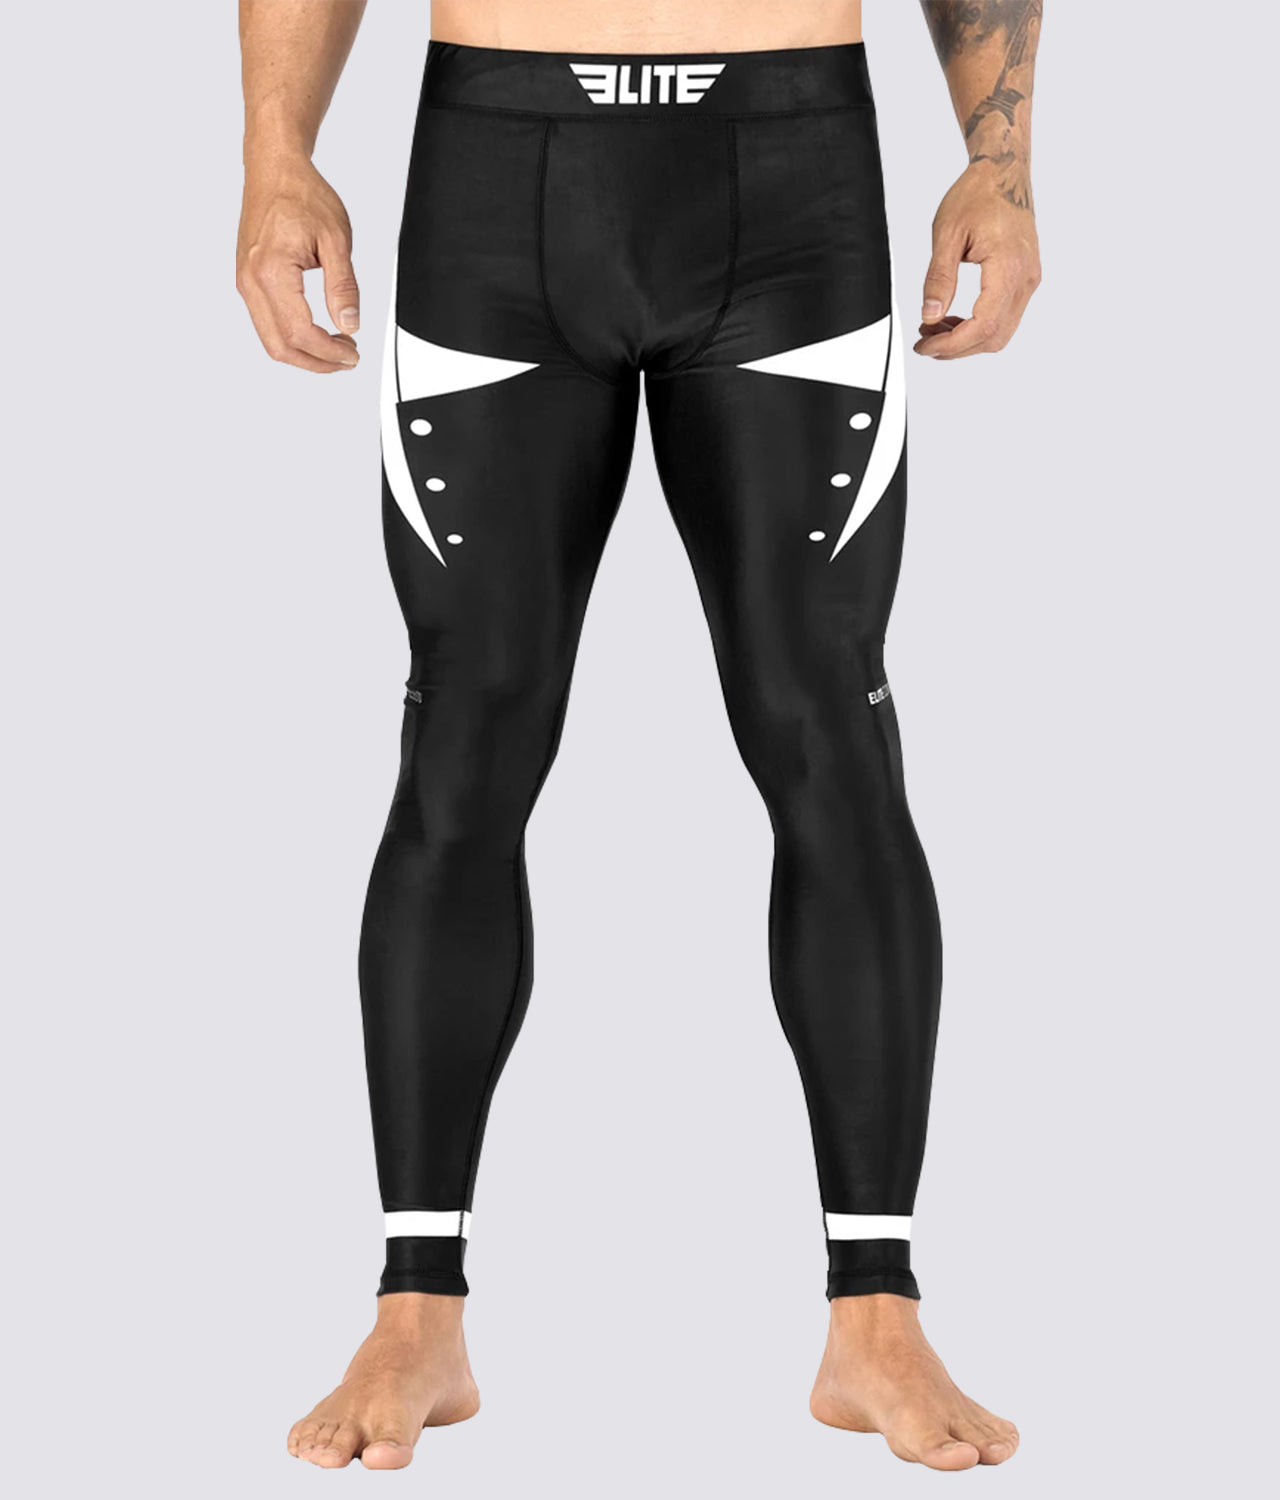 Elite Sports Star Series Lightweight Black/White Advance Compression MMA Spat Pants